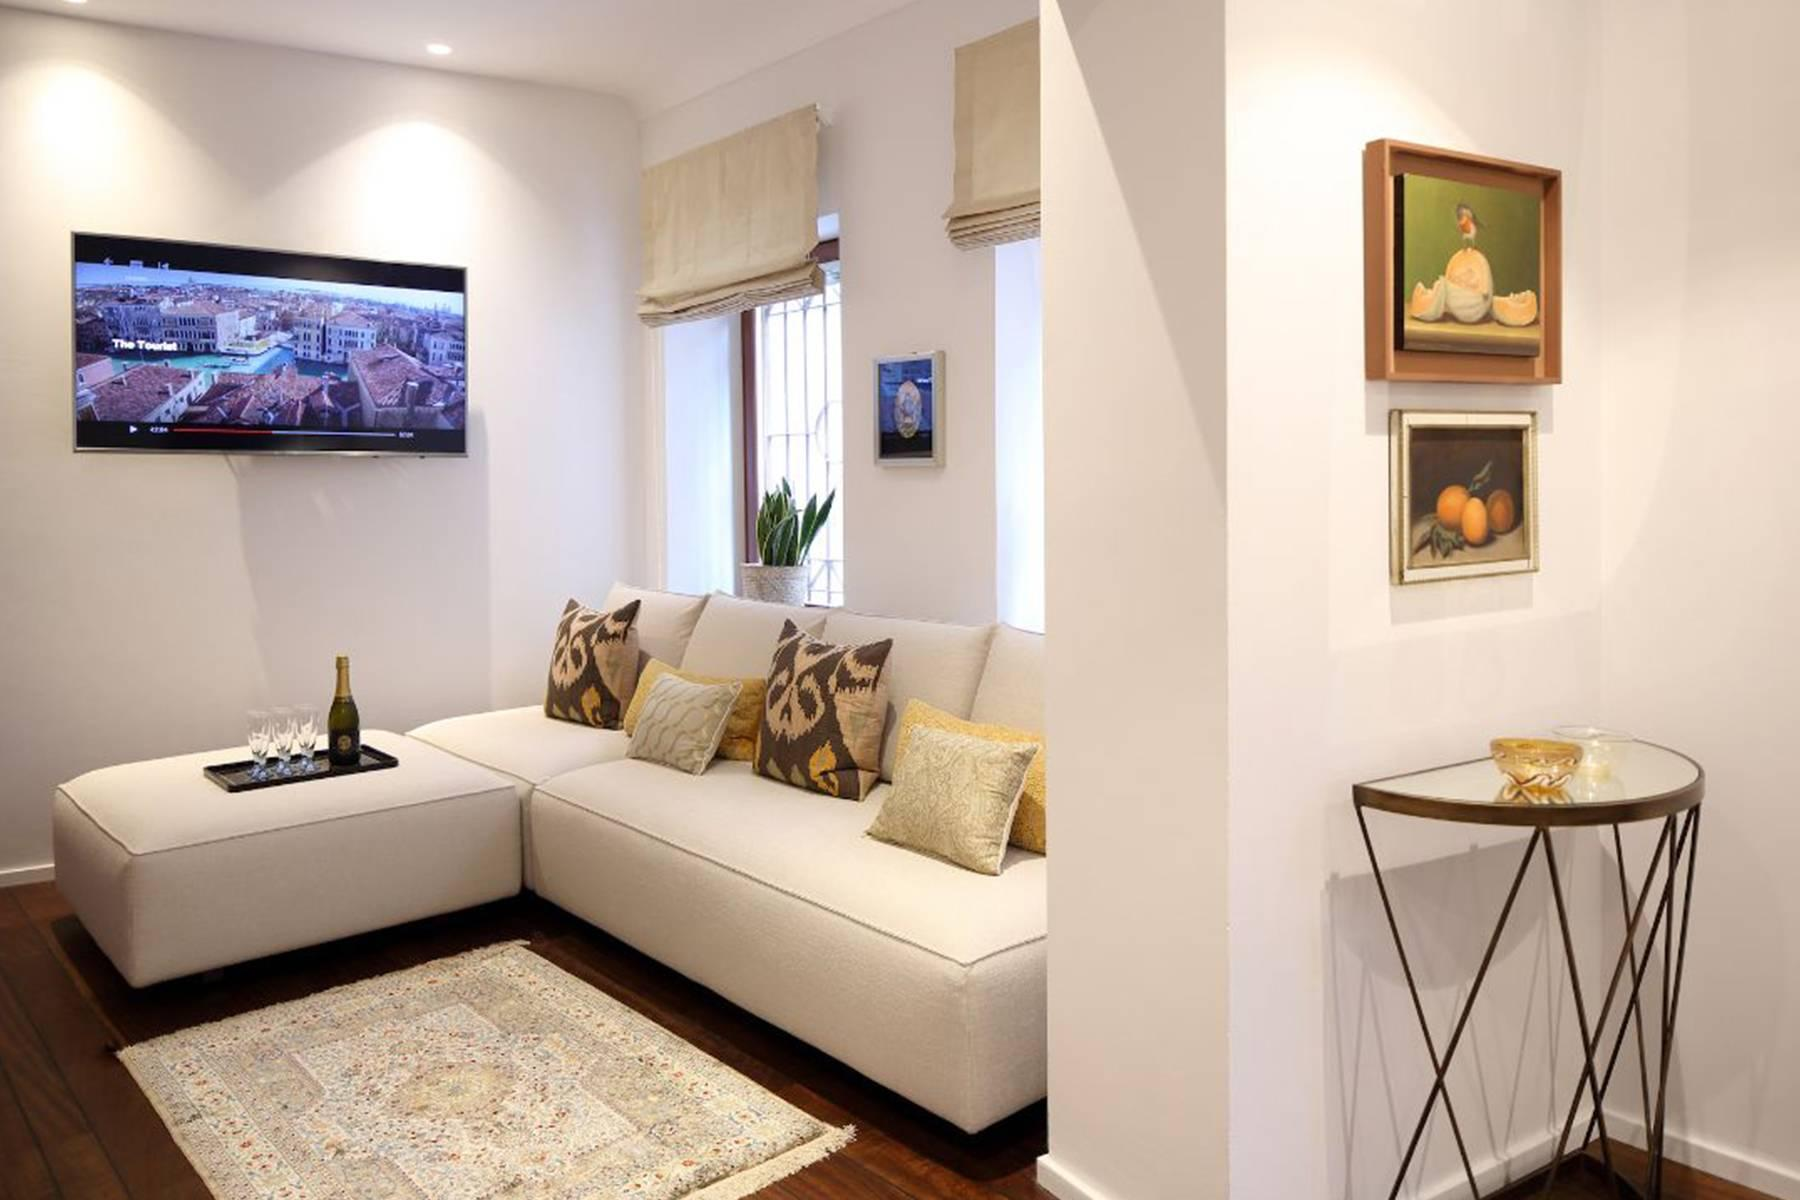 Frari stylish 4 storey house with altana terrace - 3